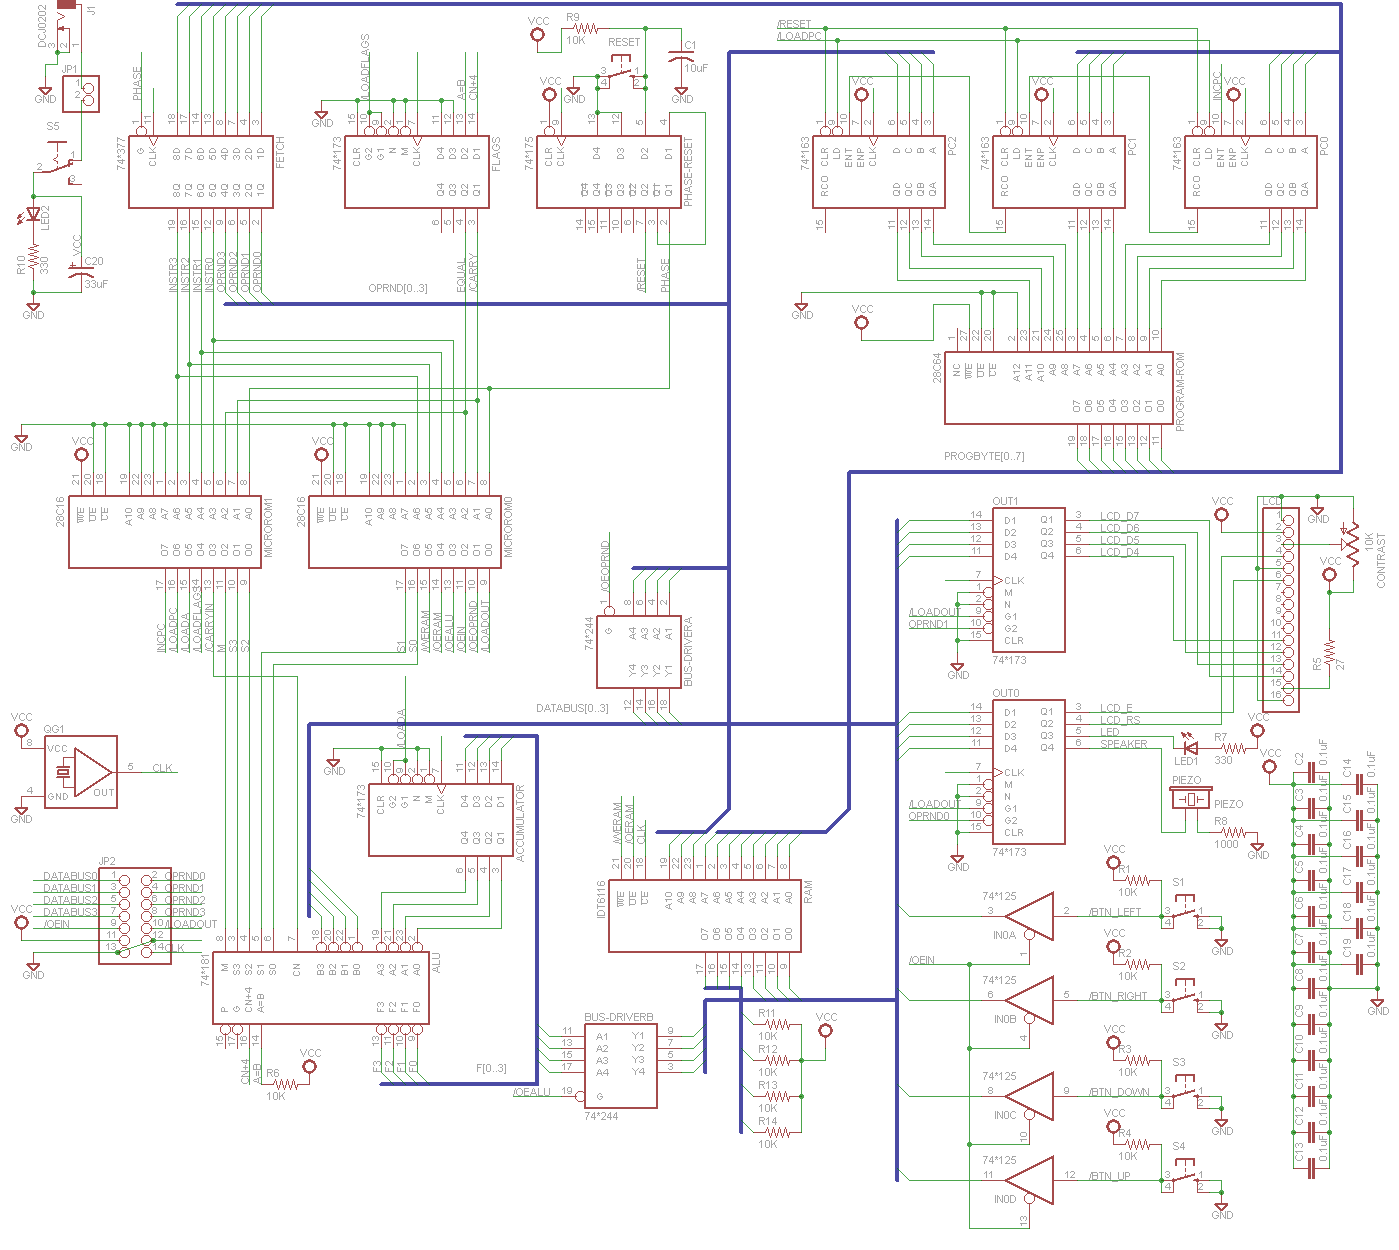 Enough with the vague design talk – here's the circuit schematic for the  Nibbler 4-bit CPU!